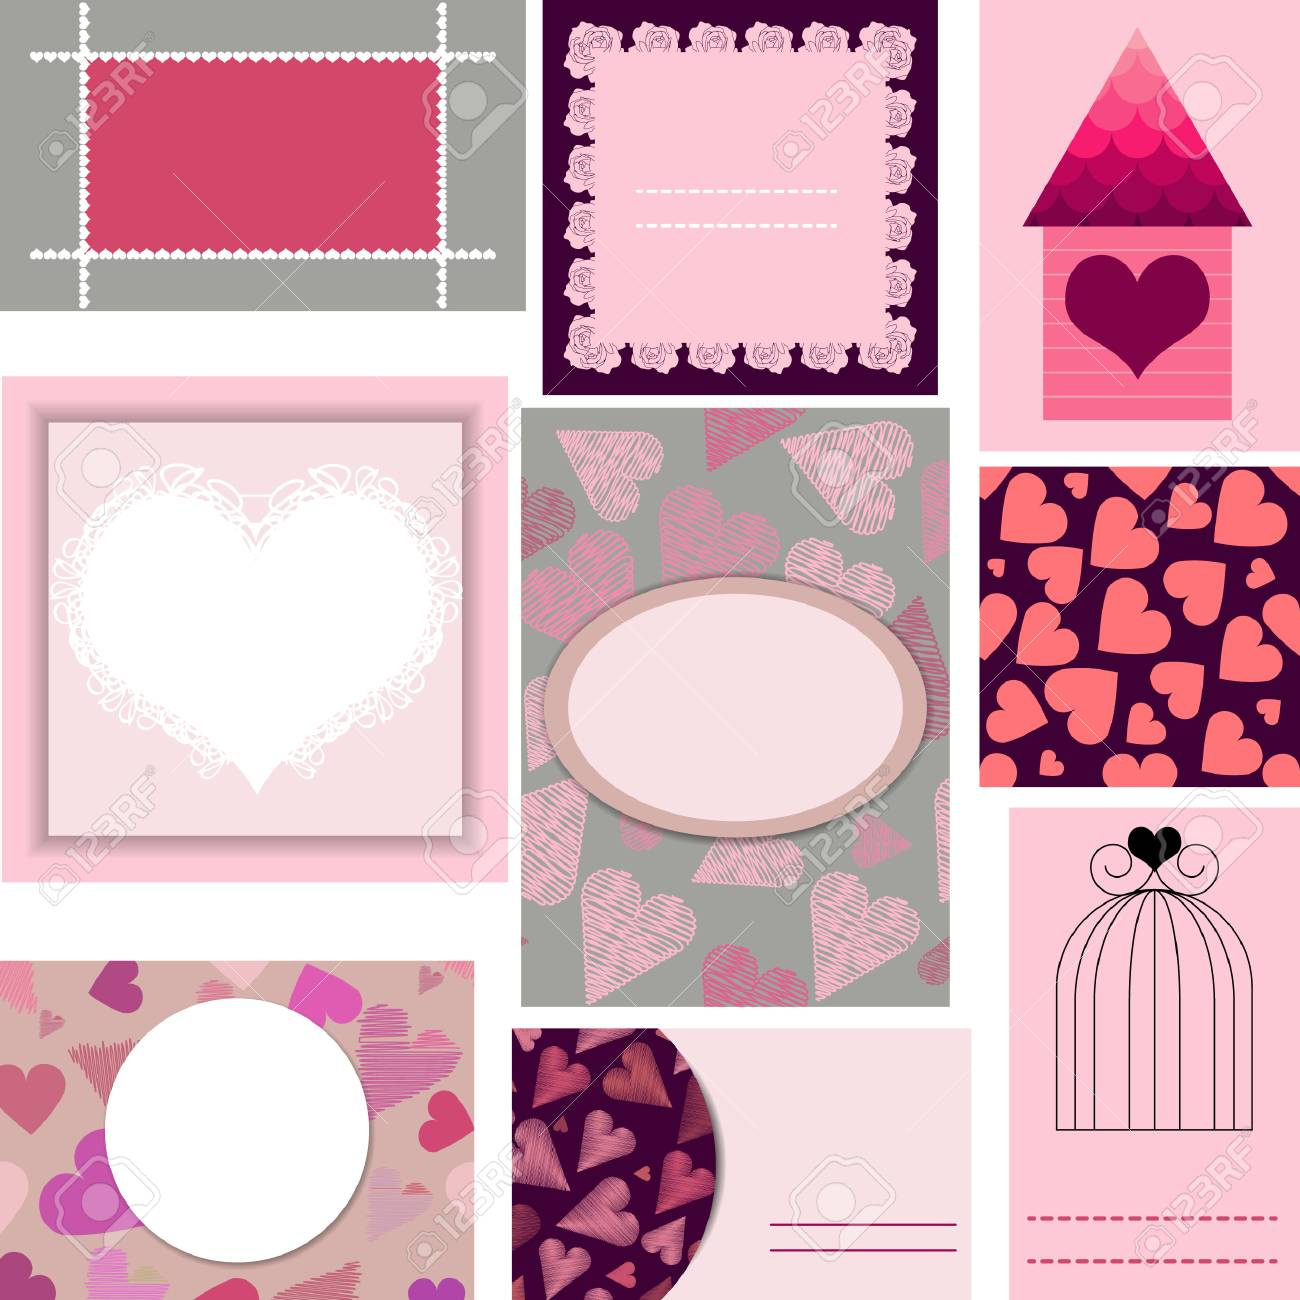 Set Of Templates For Cards Wedding Valentines Day Birthday Invitations